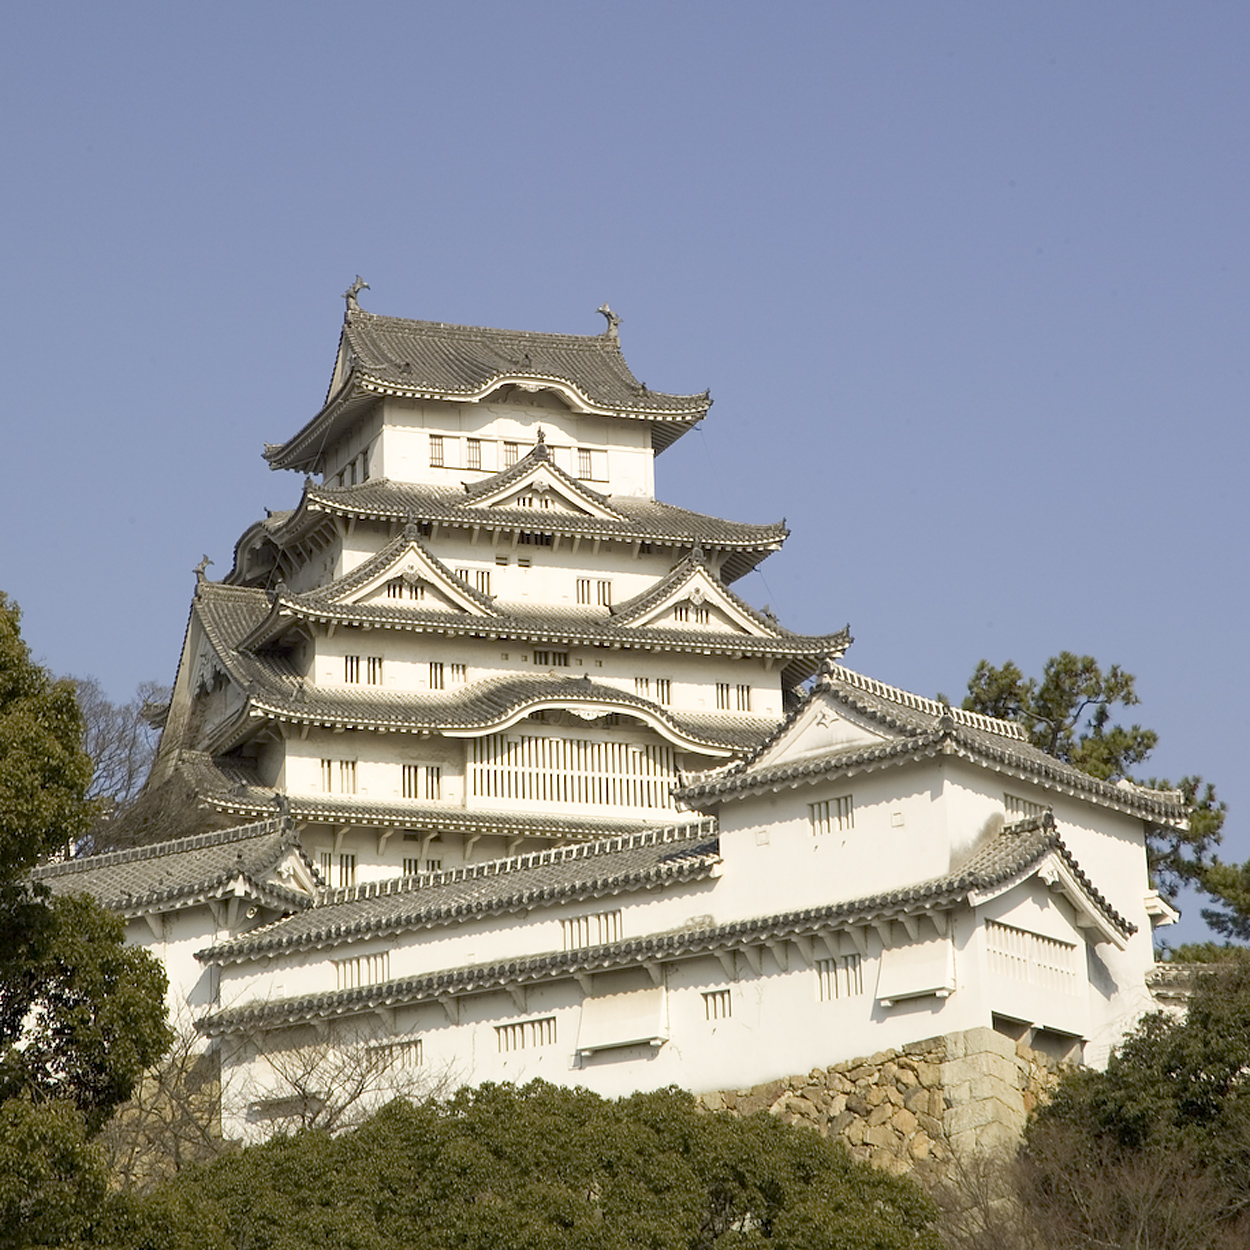 Himeji-lo castel. Maintained with a cyclic rebuild, over and over again.